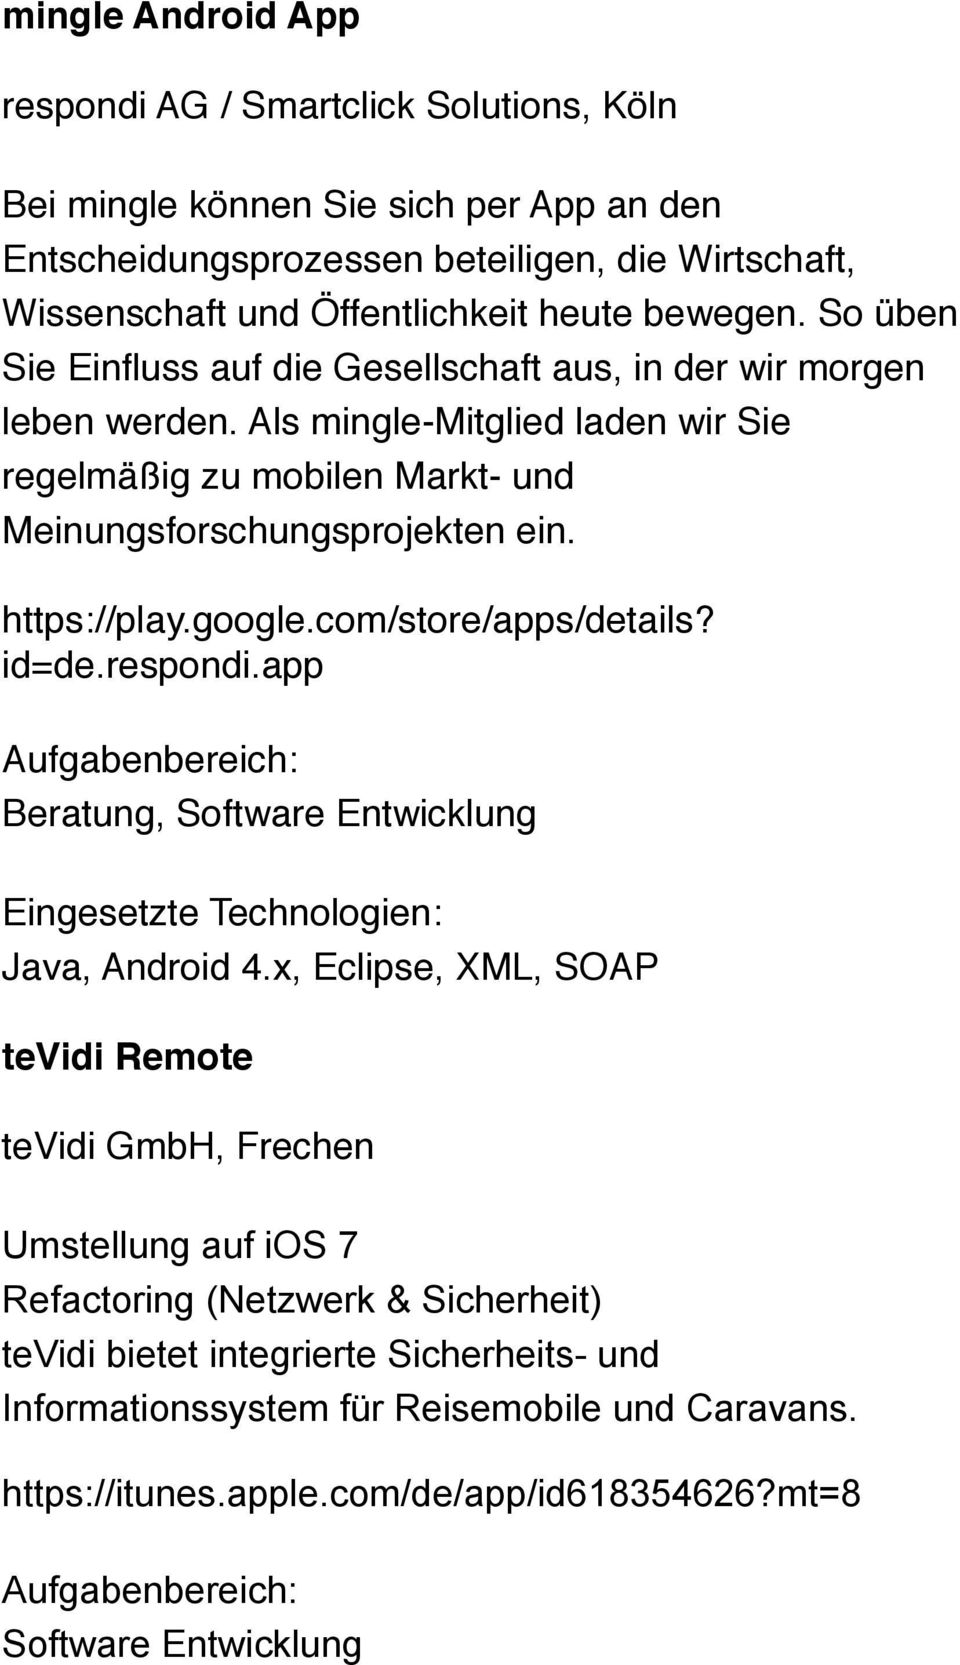 https://play.google.com/store/apps/details? id=de.respondi.app Beratung, Software Entwicklung Java, Android 4.